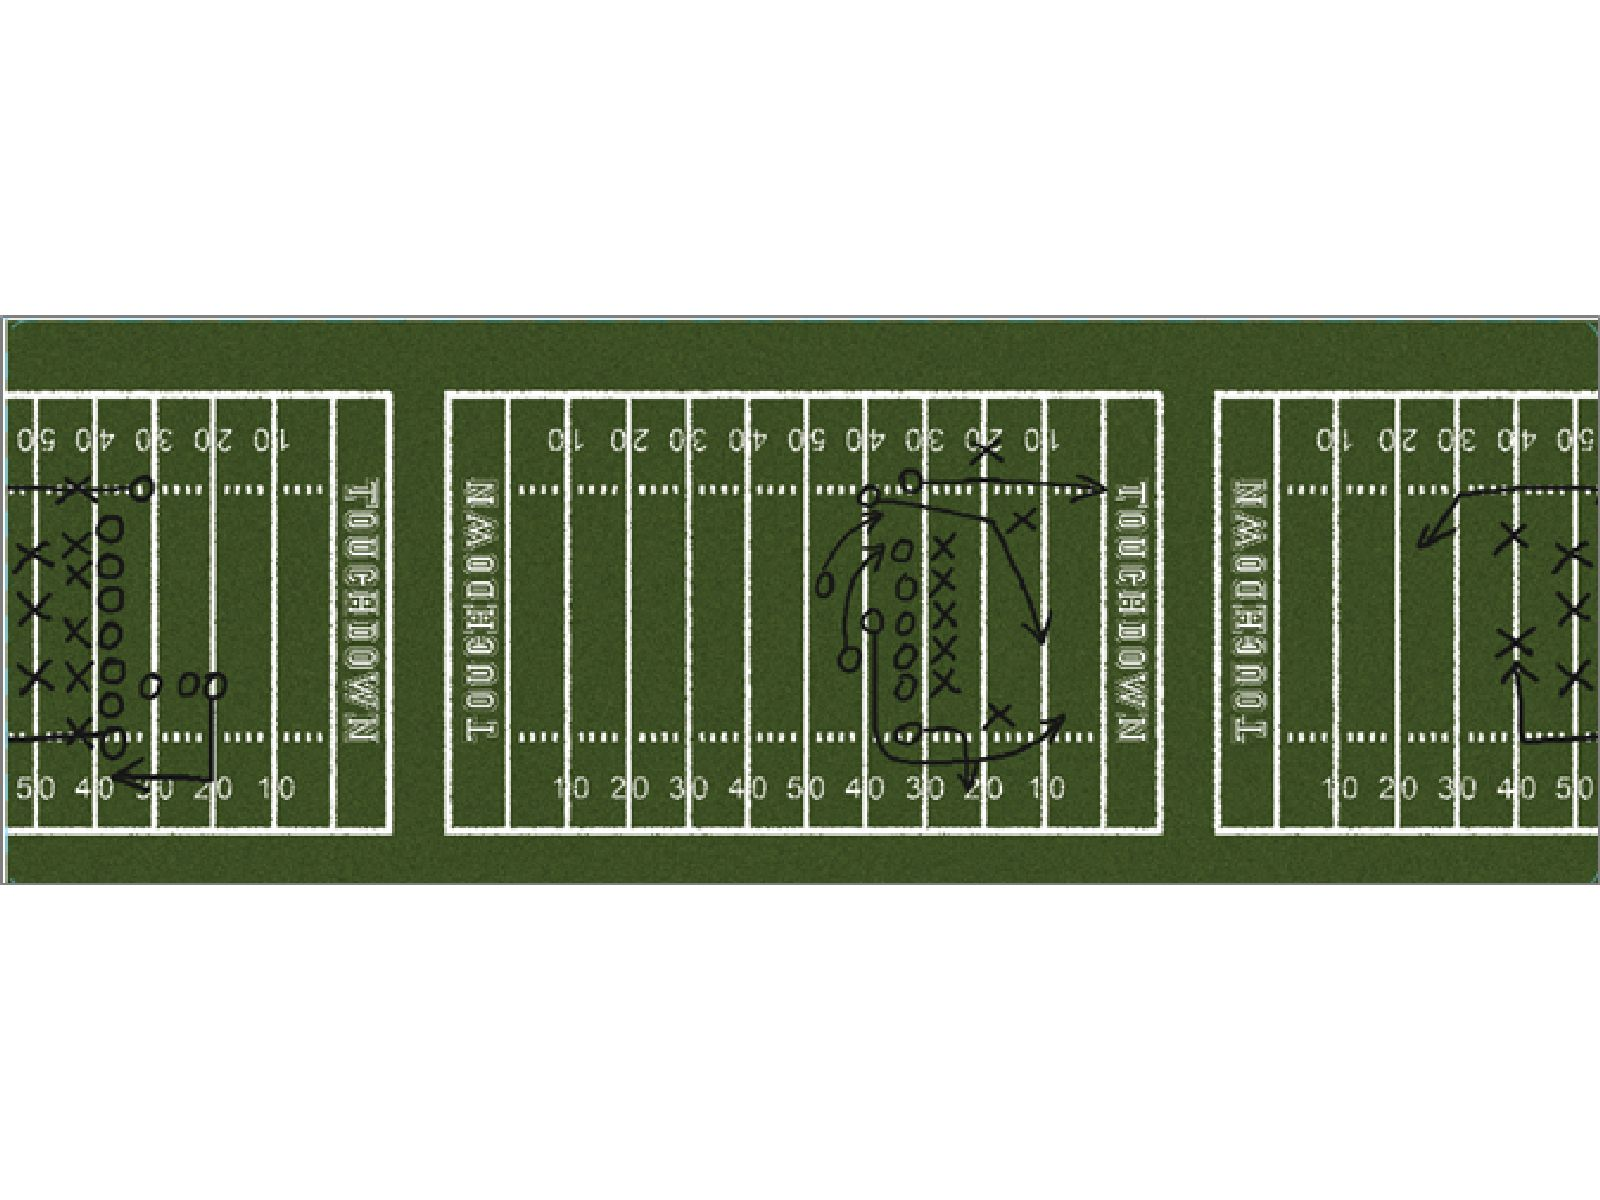 Wrap- Football Field